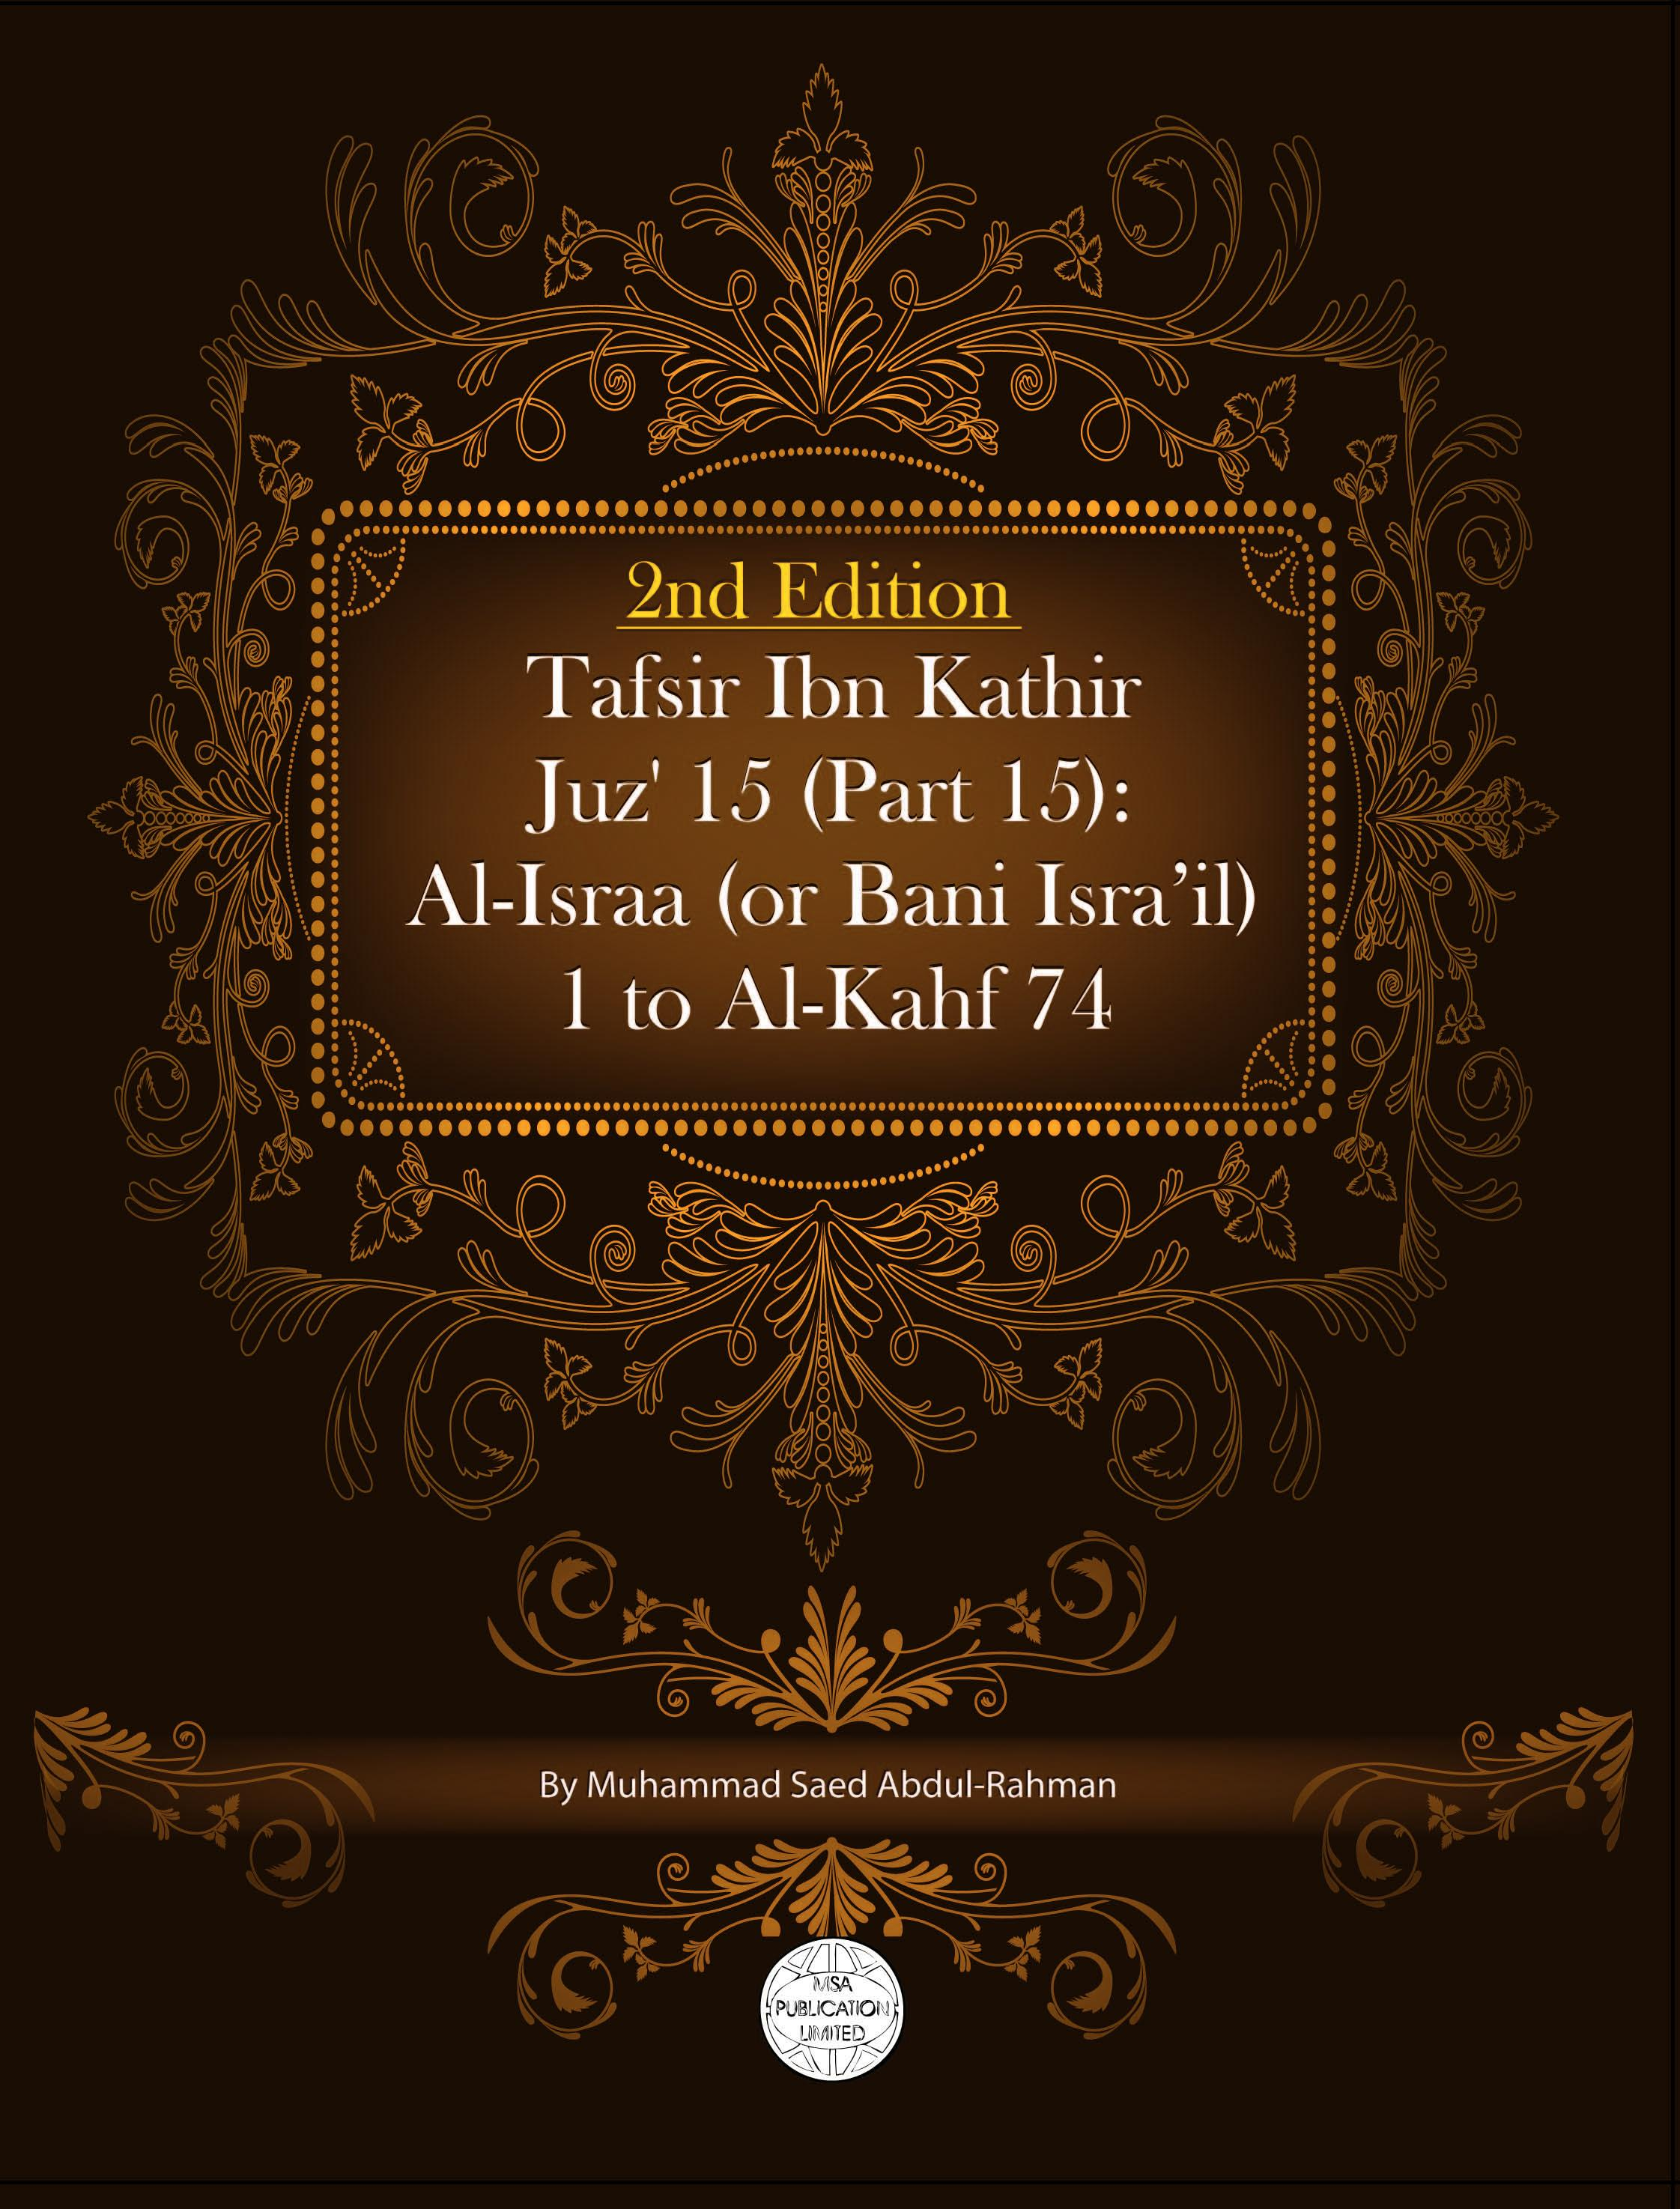 Tafsir Ibn Kathir Juz' 15 (Part 15): Al-Israa (or Bani Isra'il) 1 To Al-Kahf 74 2nd Edition EB9781861797155